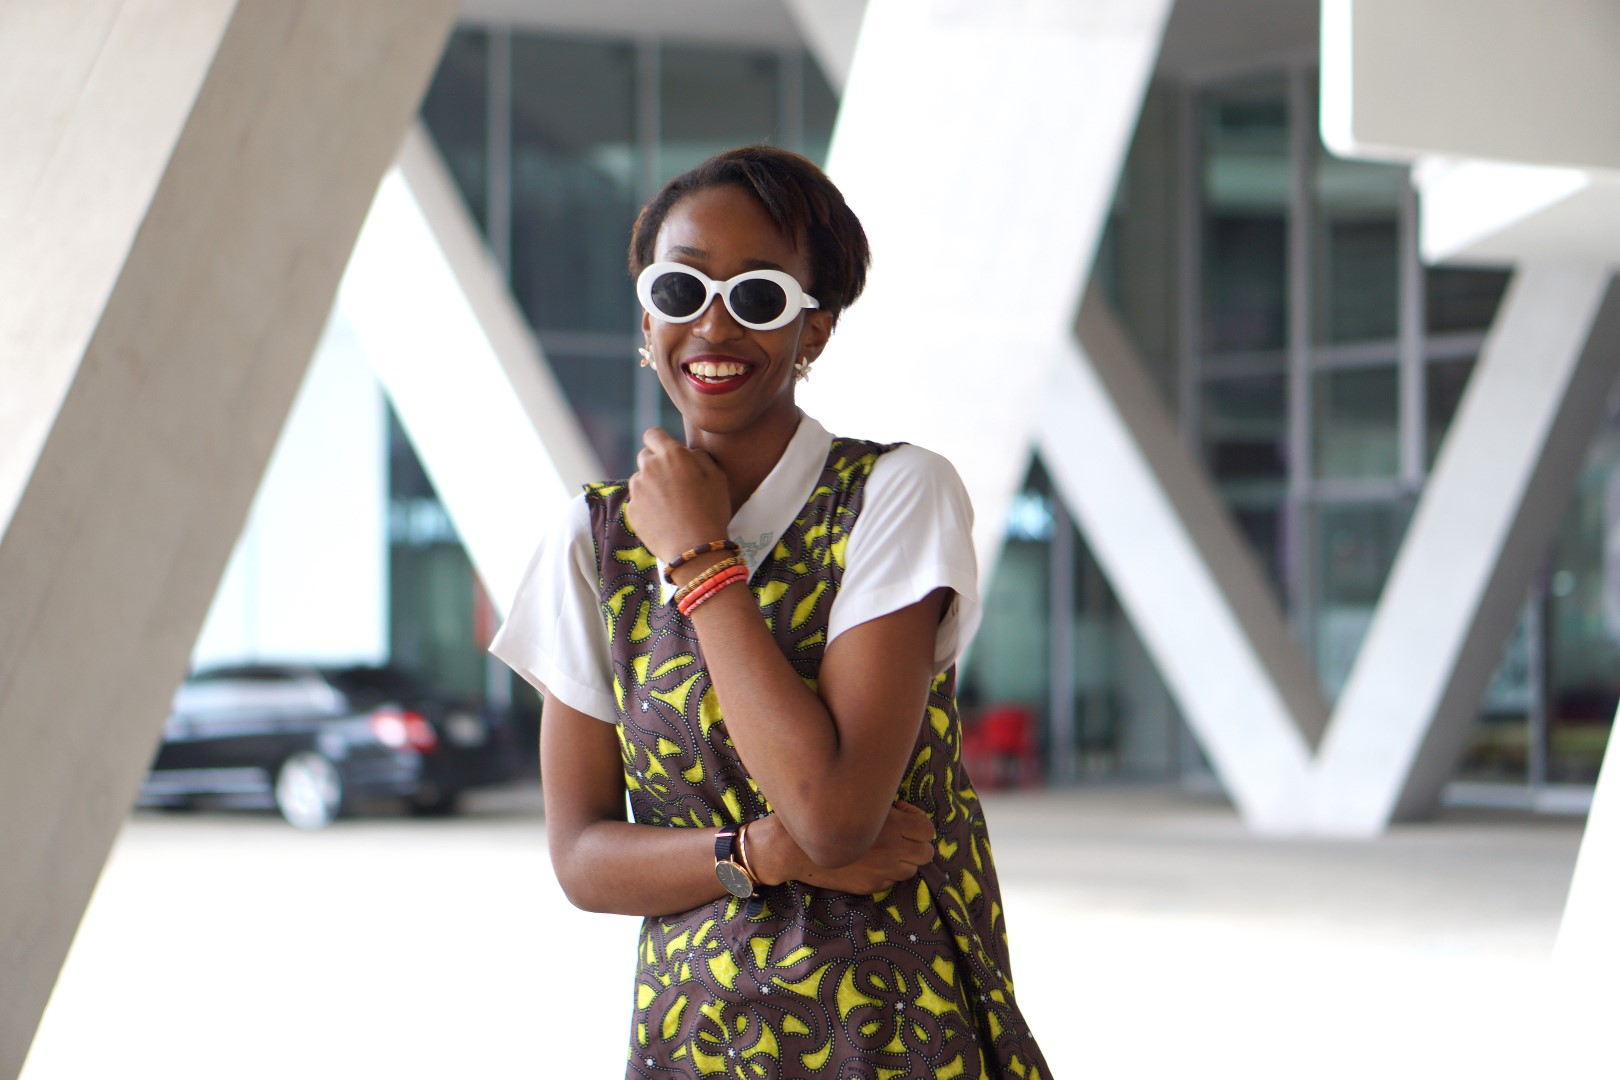 sleeveless Ankara shirt dress layered with white shirt inside